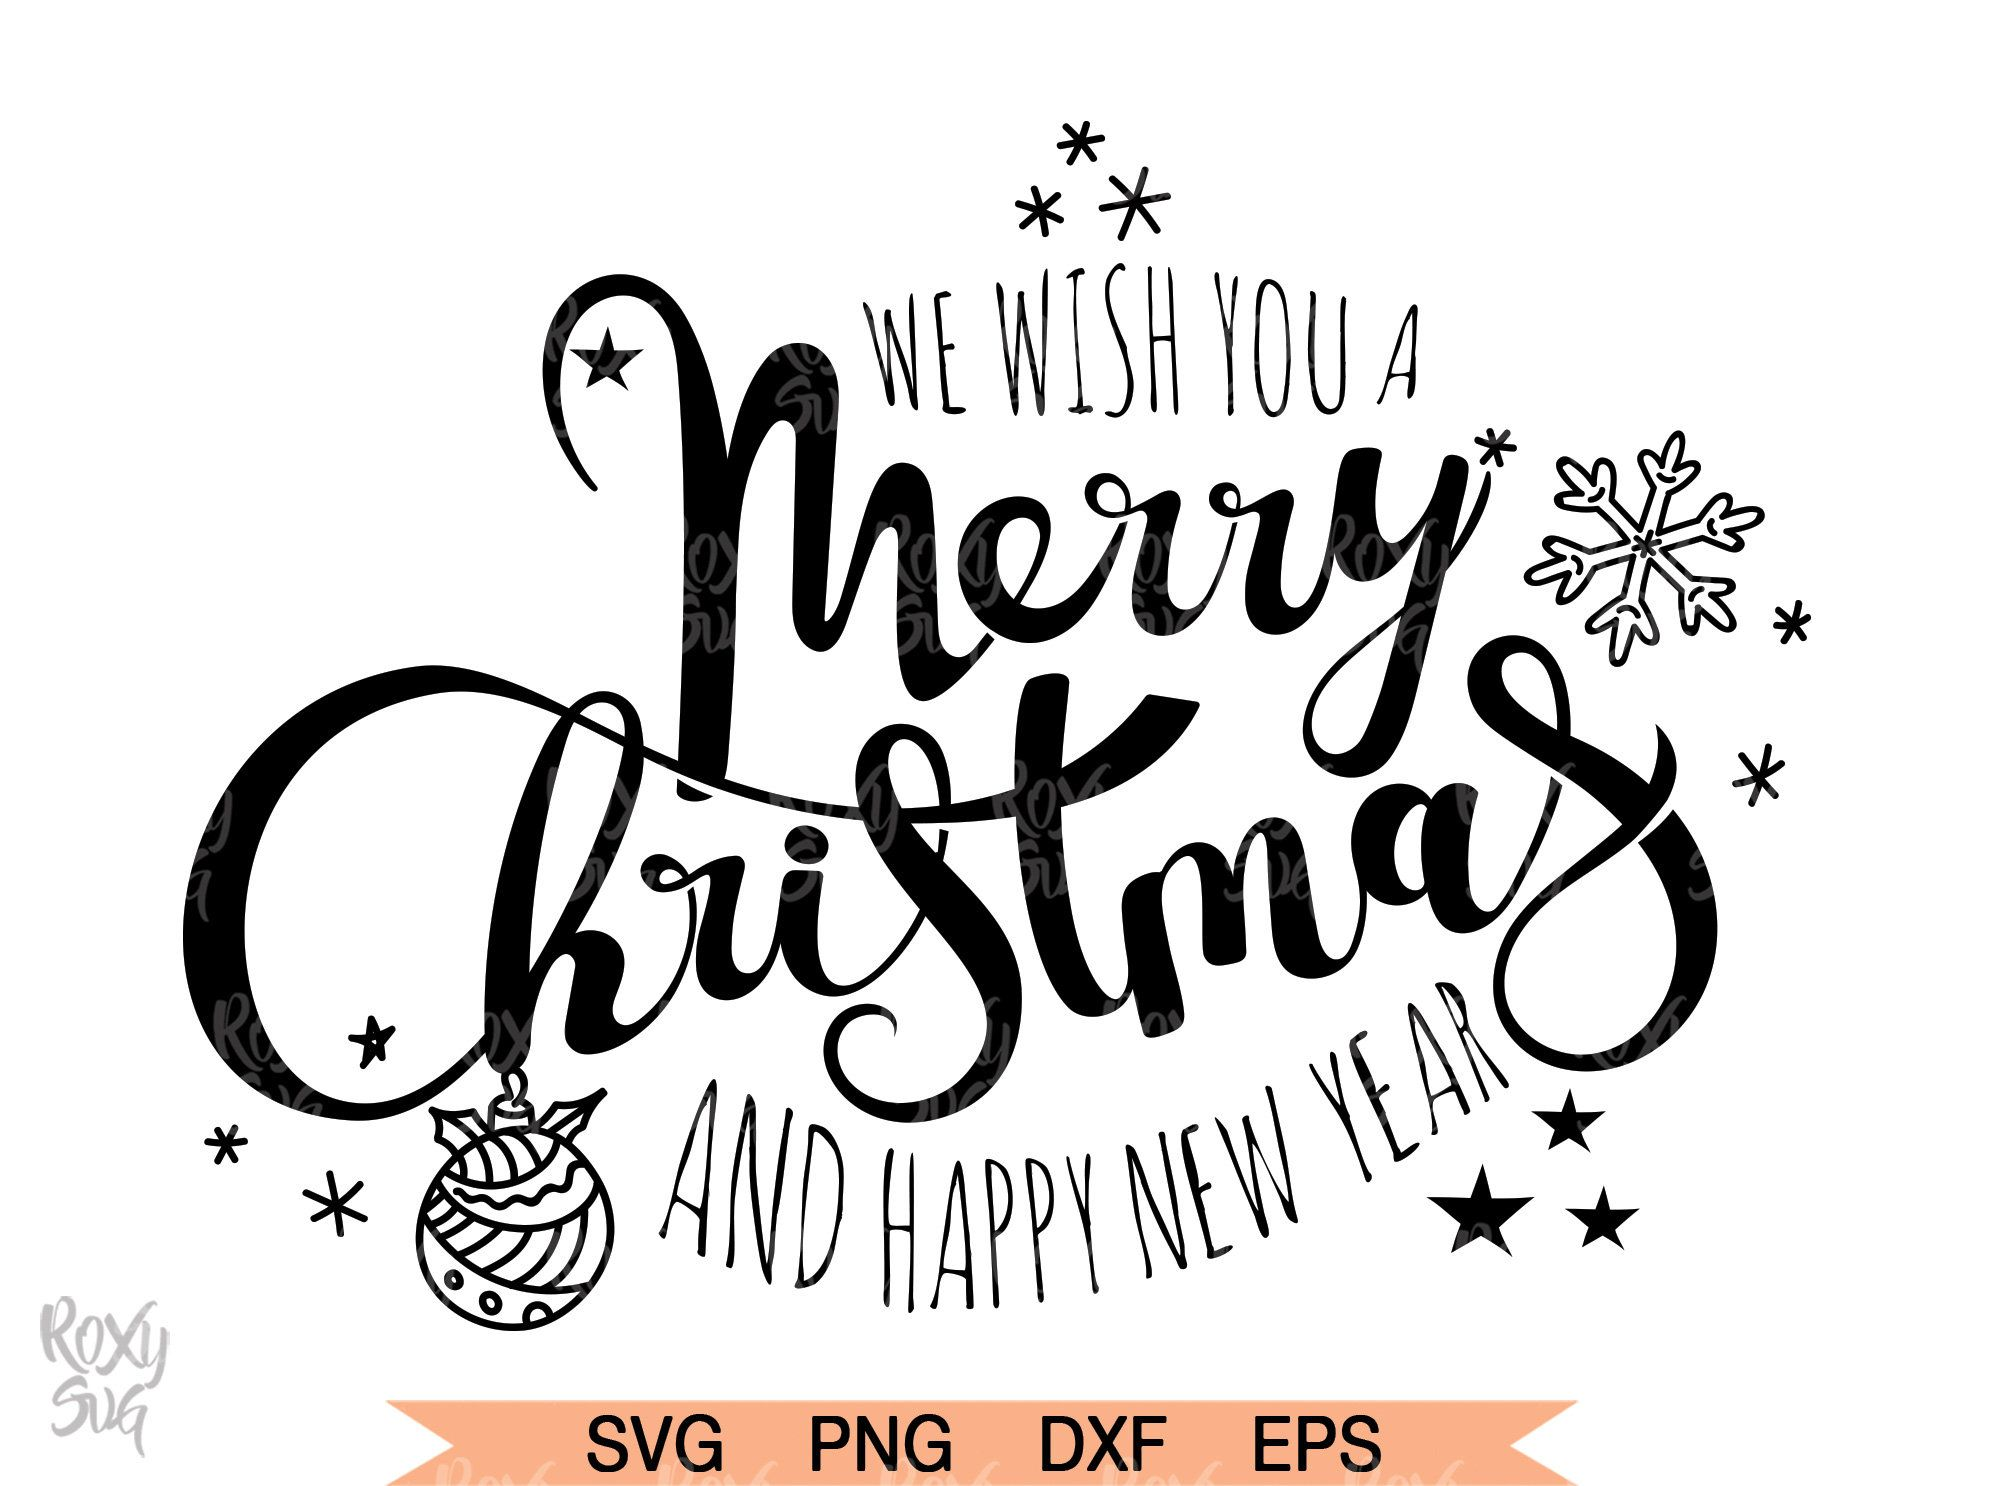 merry christmas svg happy new year 2020 svg christmas svg merry christmas clipart christmas svg files for cricut in 2020 christmas svg christmas svg files christmas clipart christmas svg christmas svg files